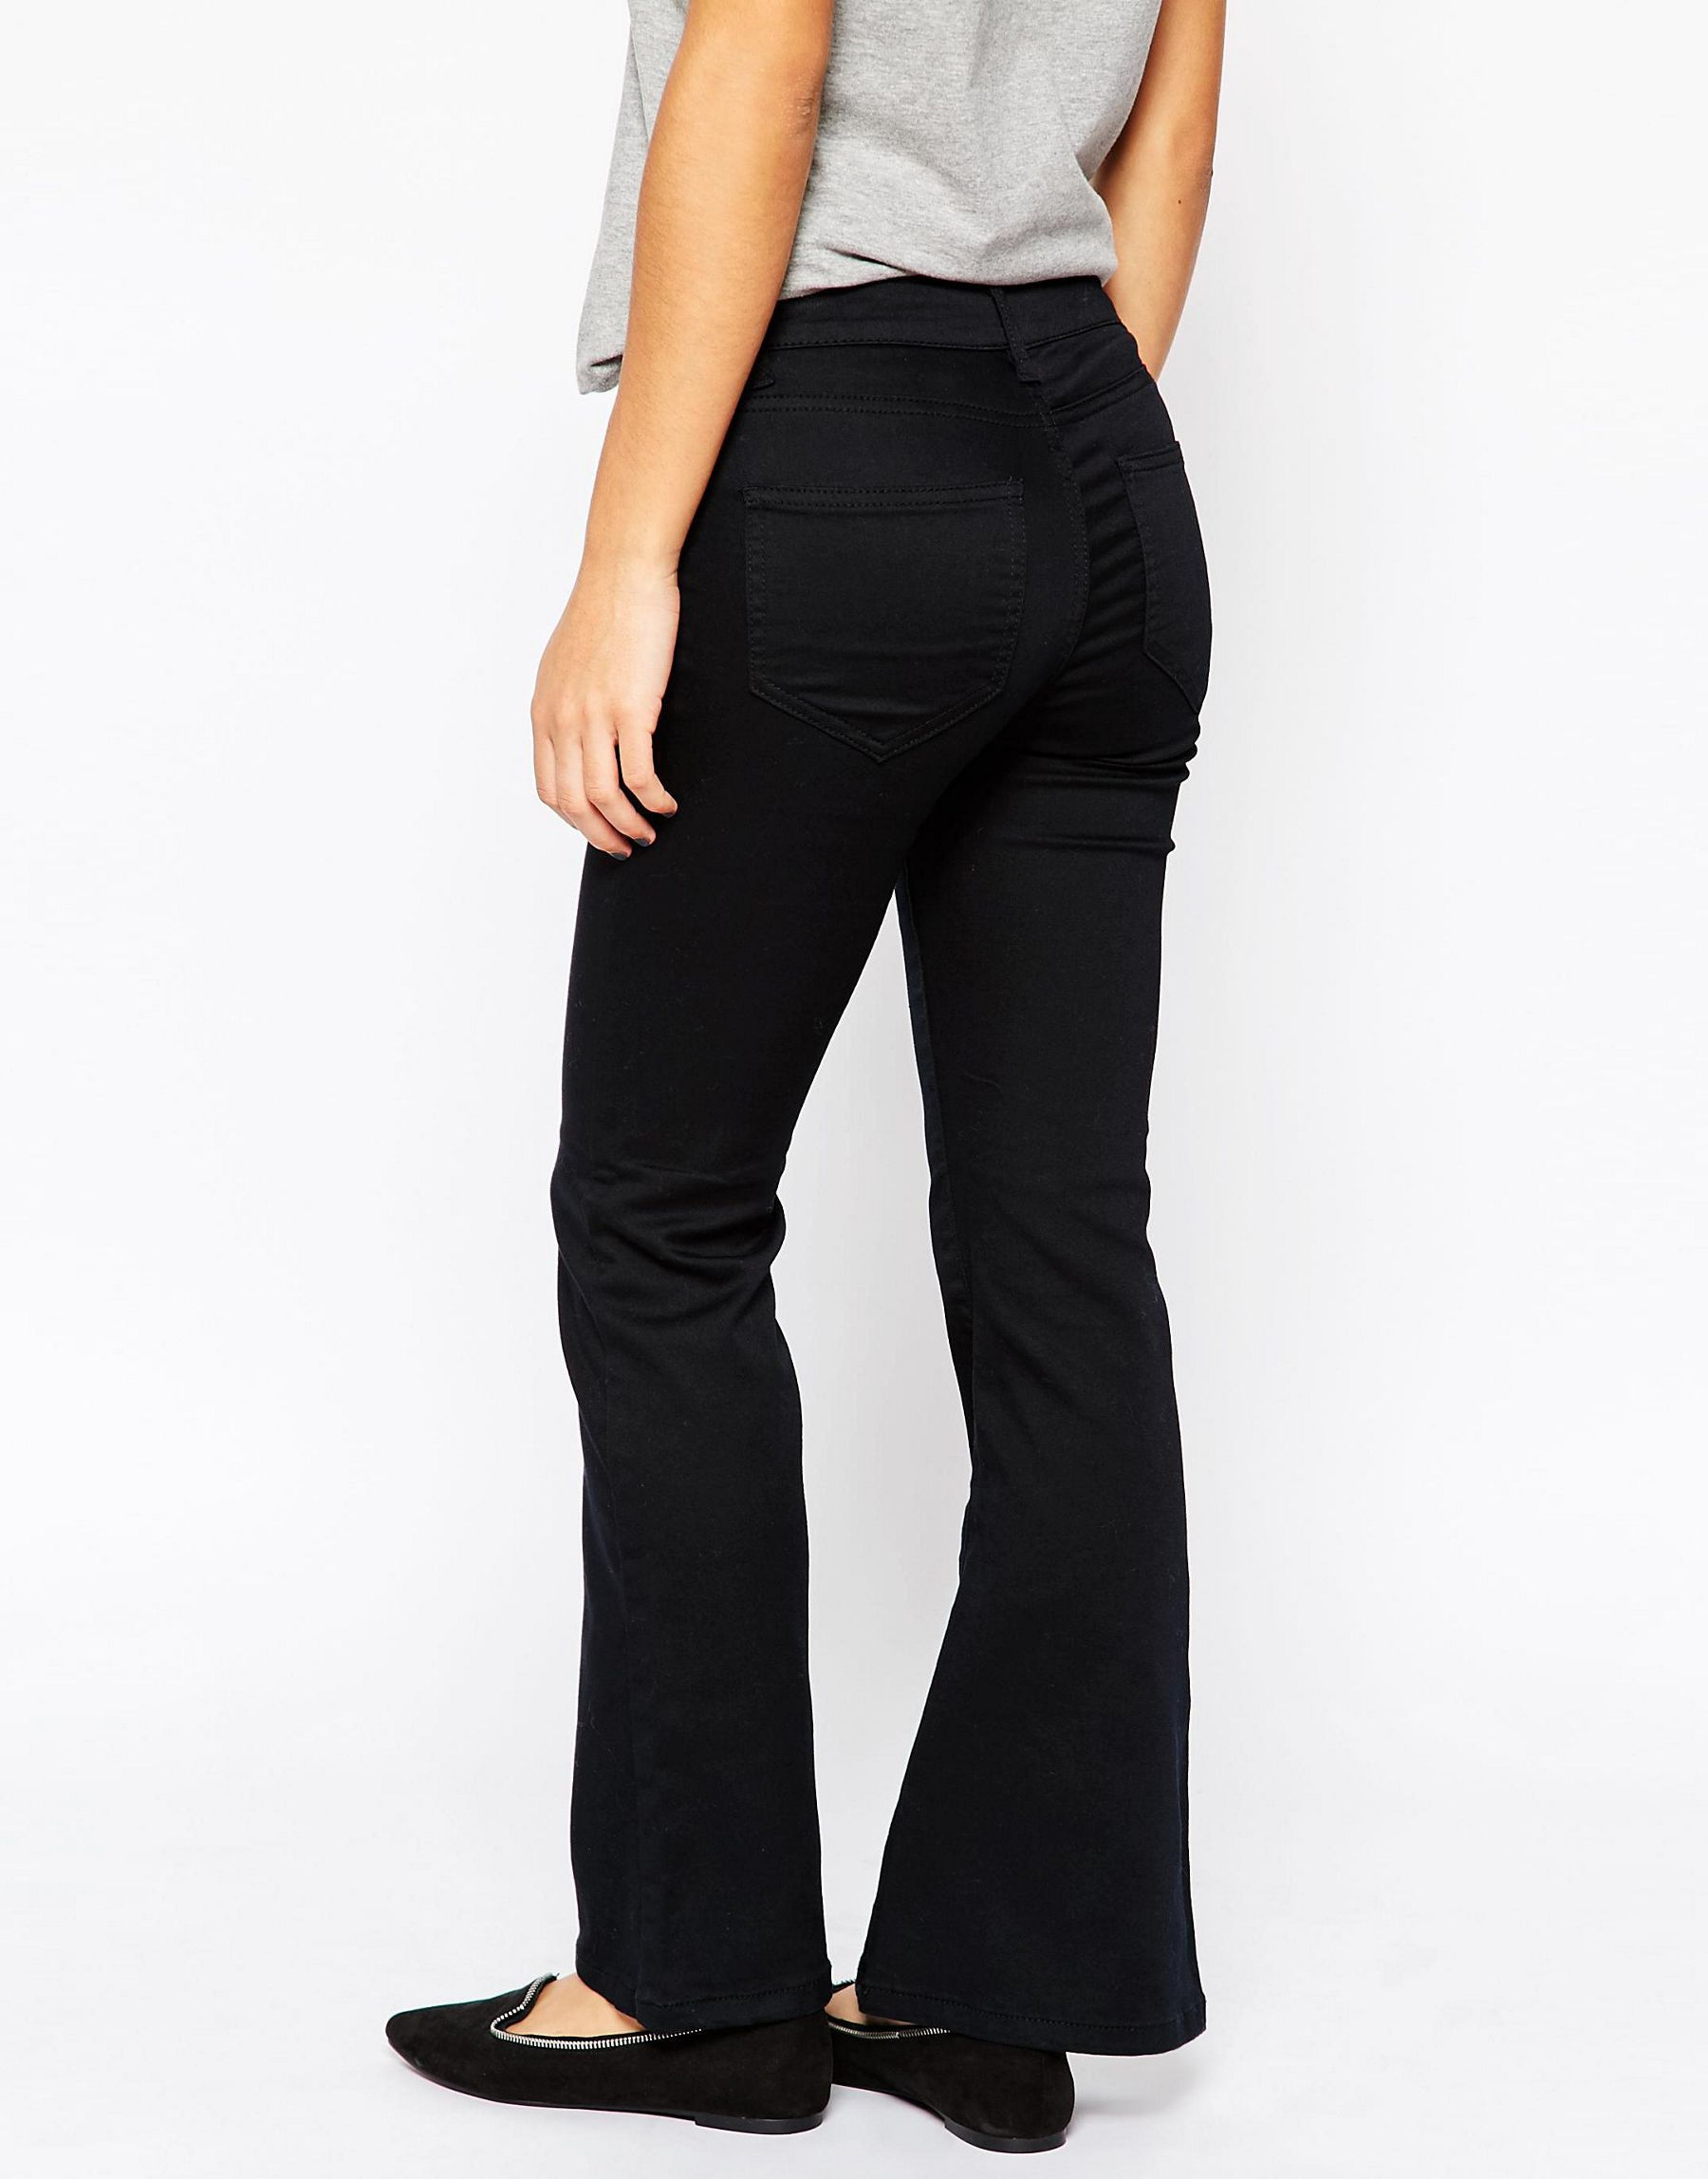 Shop Catherines for plus size dress pants & slacks in sizes Find a wide selection of curvy styles, like classic black pants, trendy wide-leg pants & more.